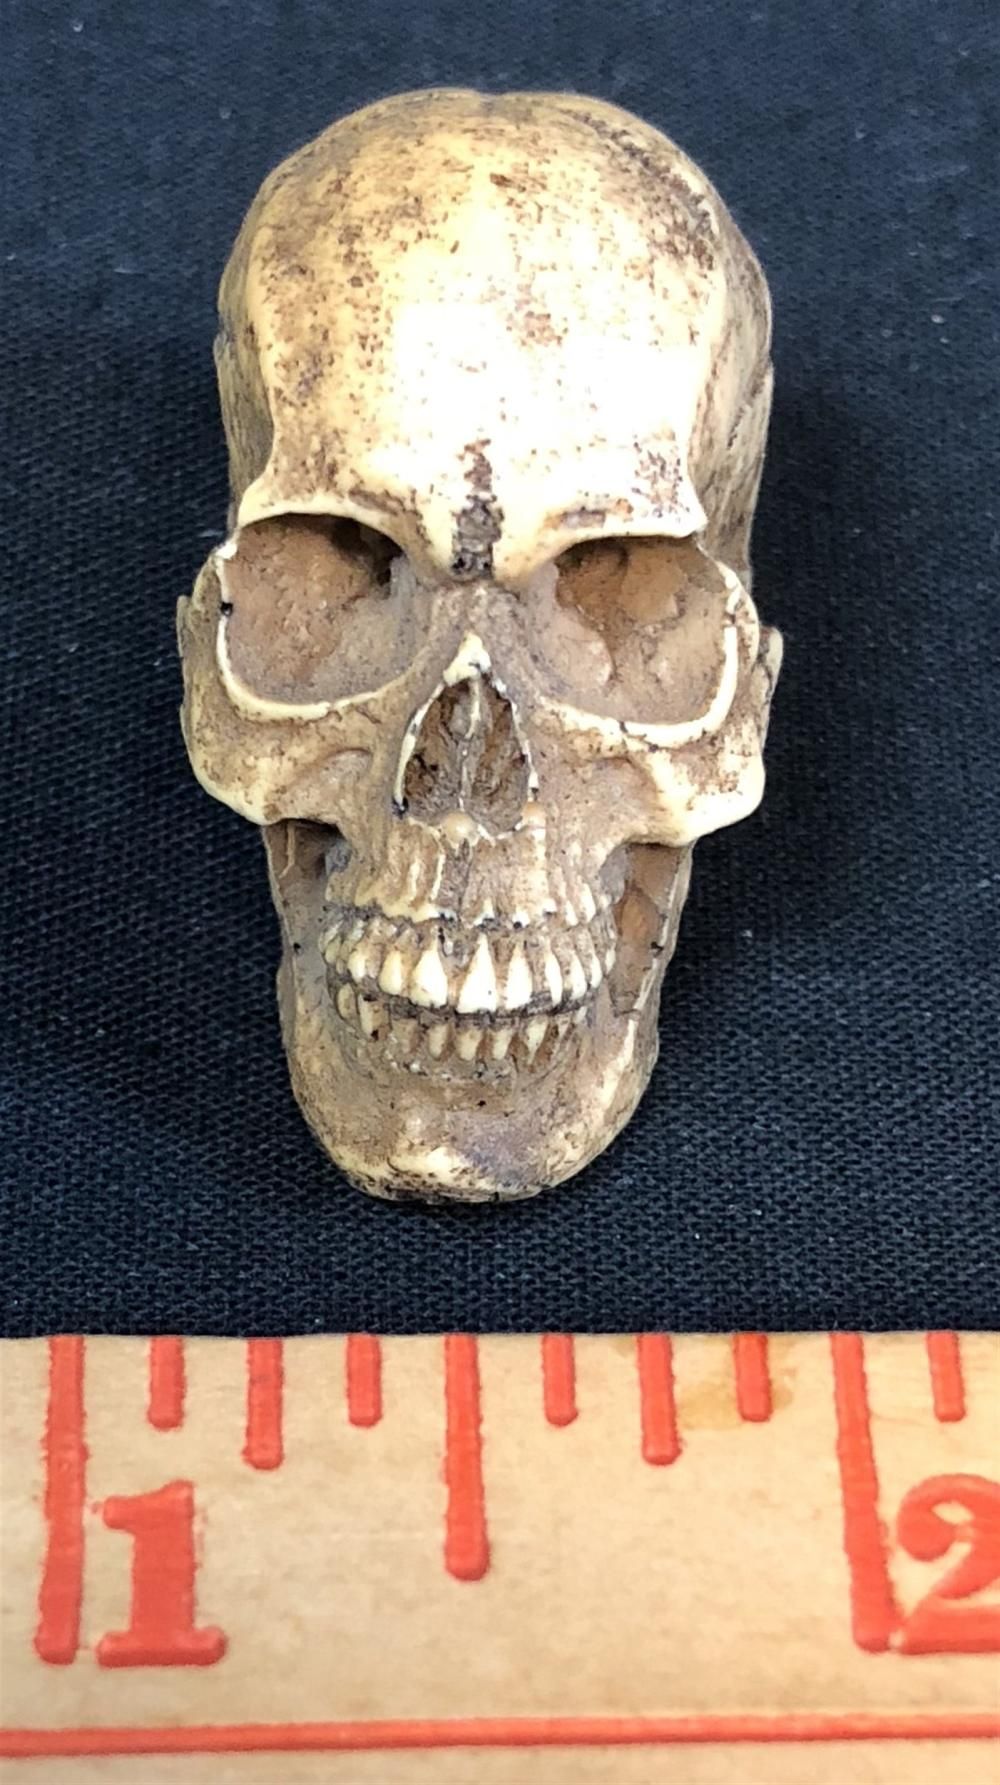 The Lord of the Rings: The Return of the King (2003) - Miniature Skull